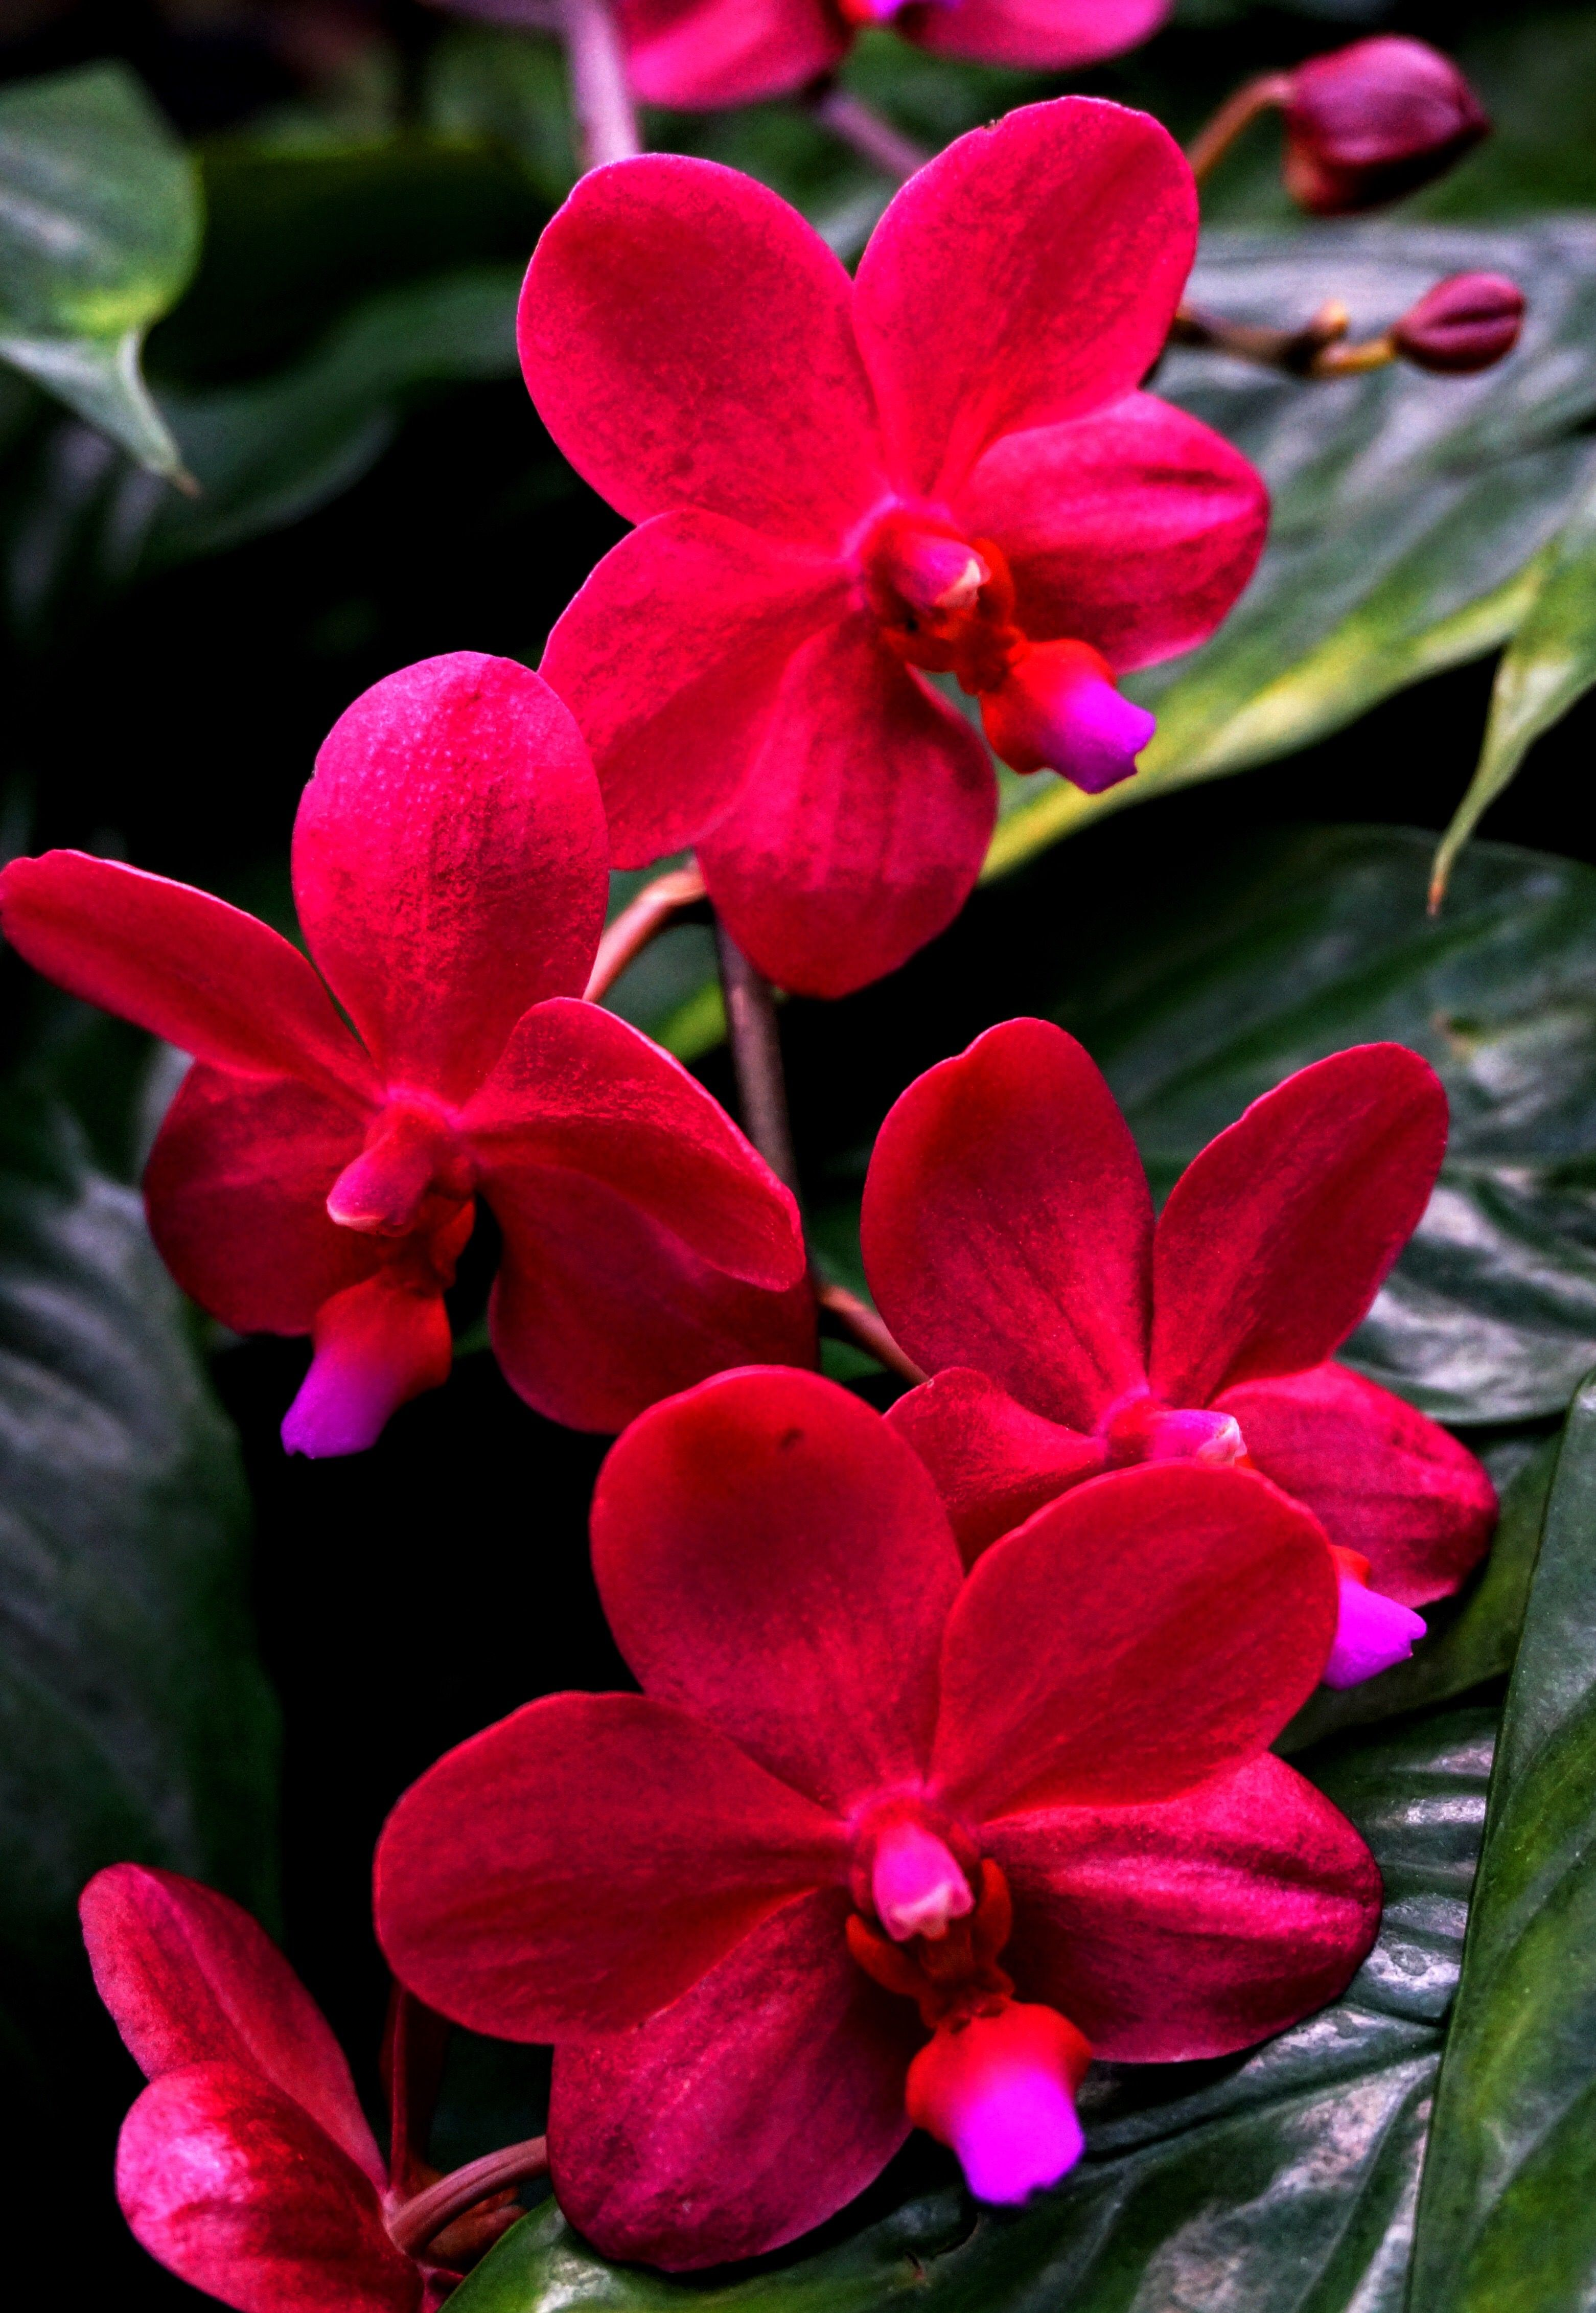 Pin by on pinterest orchid flowers and red flowers exotic flowers beautiful flowers spa therapy blossoms green nature gardening izmirmasajfo